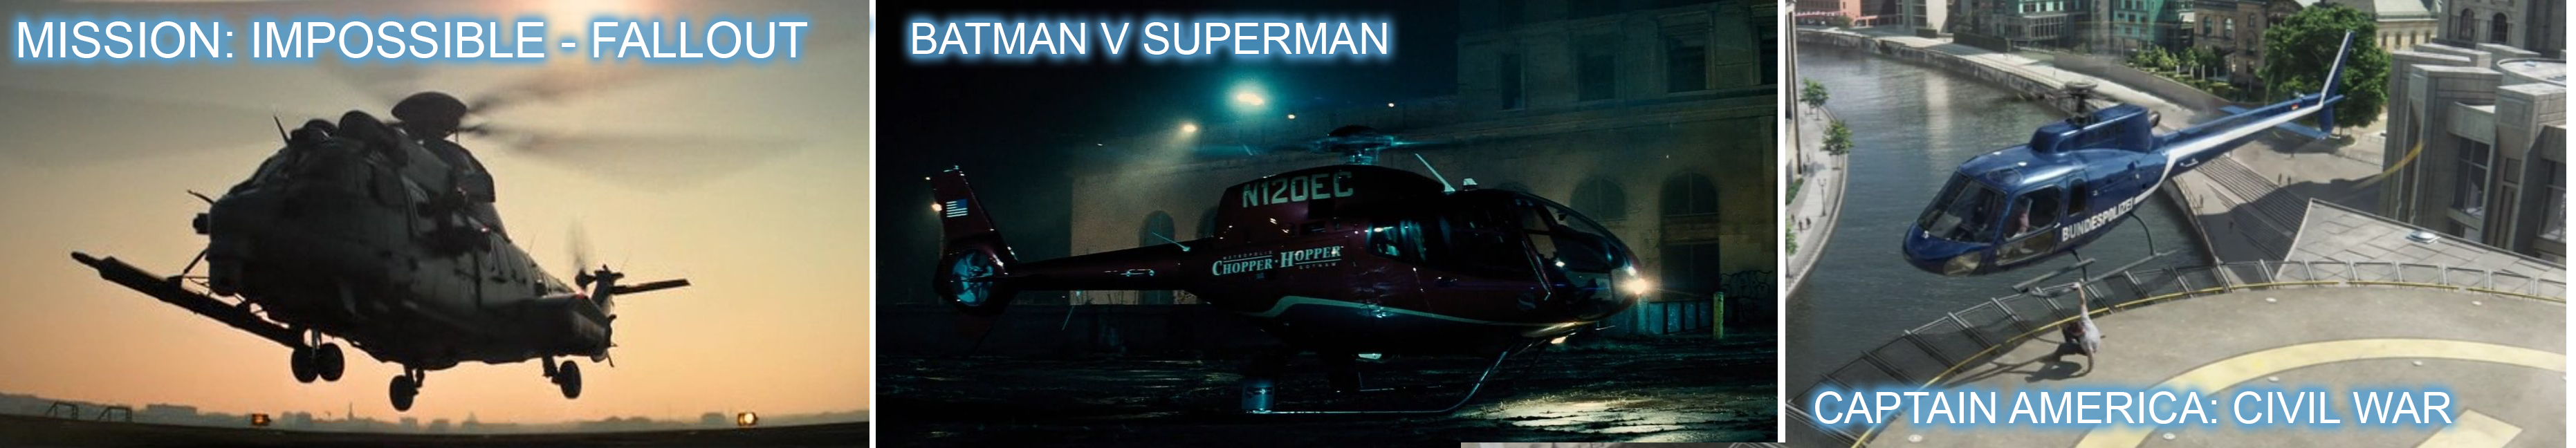 Eurocopter product placement in Mission Impossible Fallout, Batman V Superman and Captain American Civil war